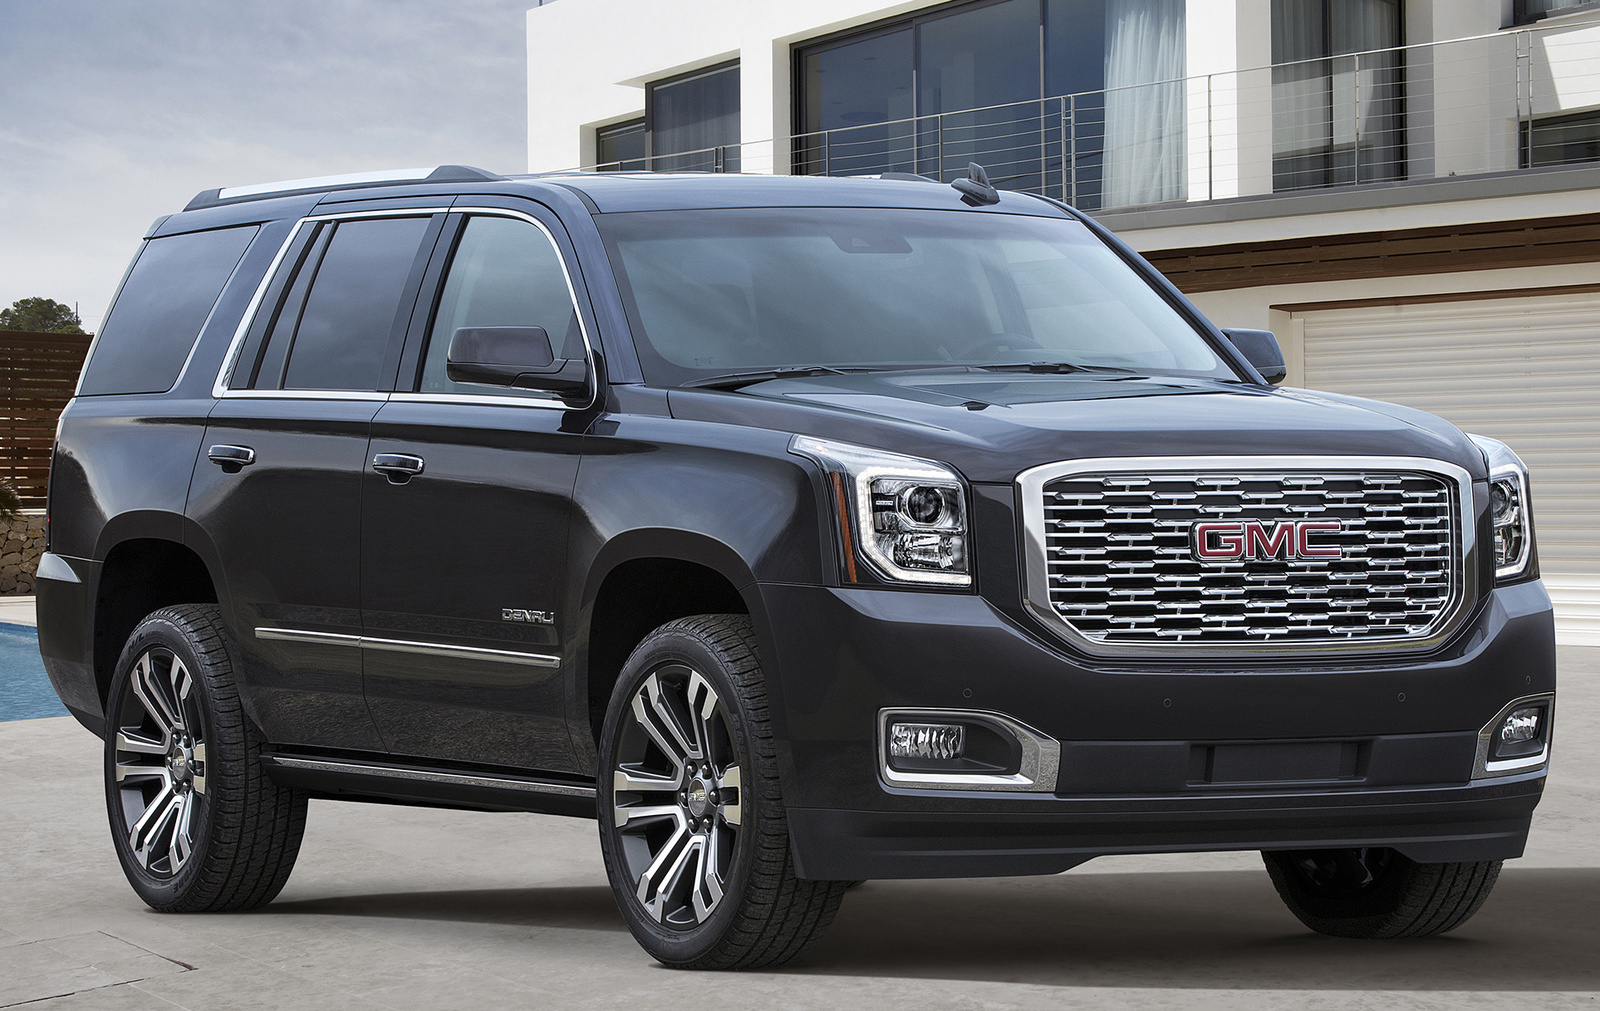 2017 / 2018 GMC Yukon for Sale in your area - CarGurus